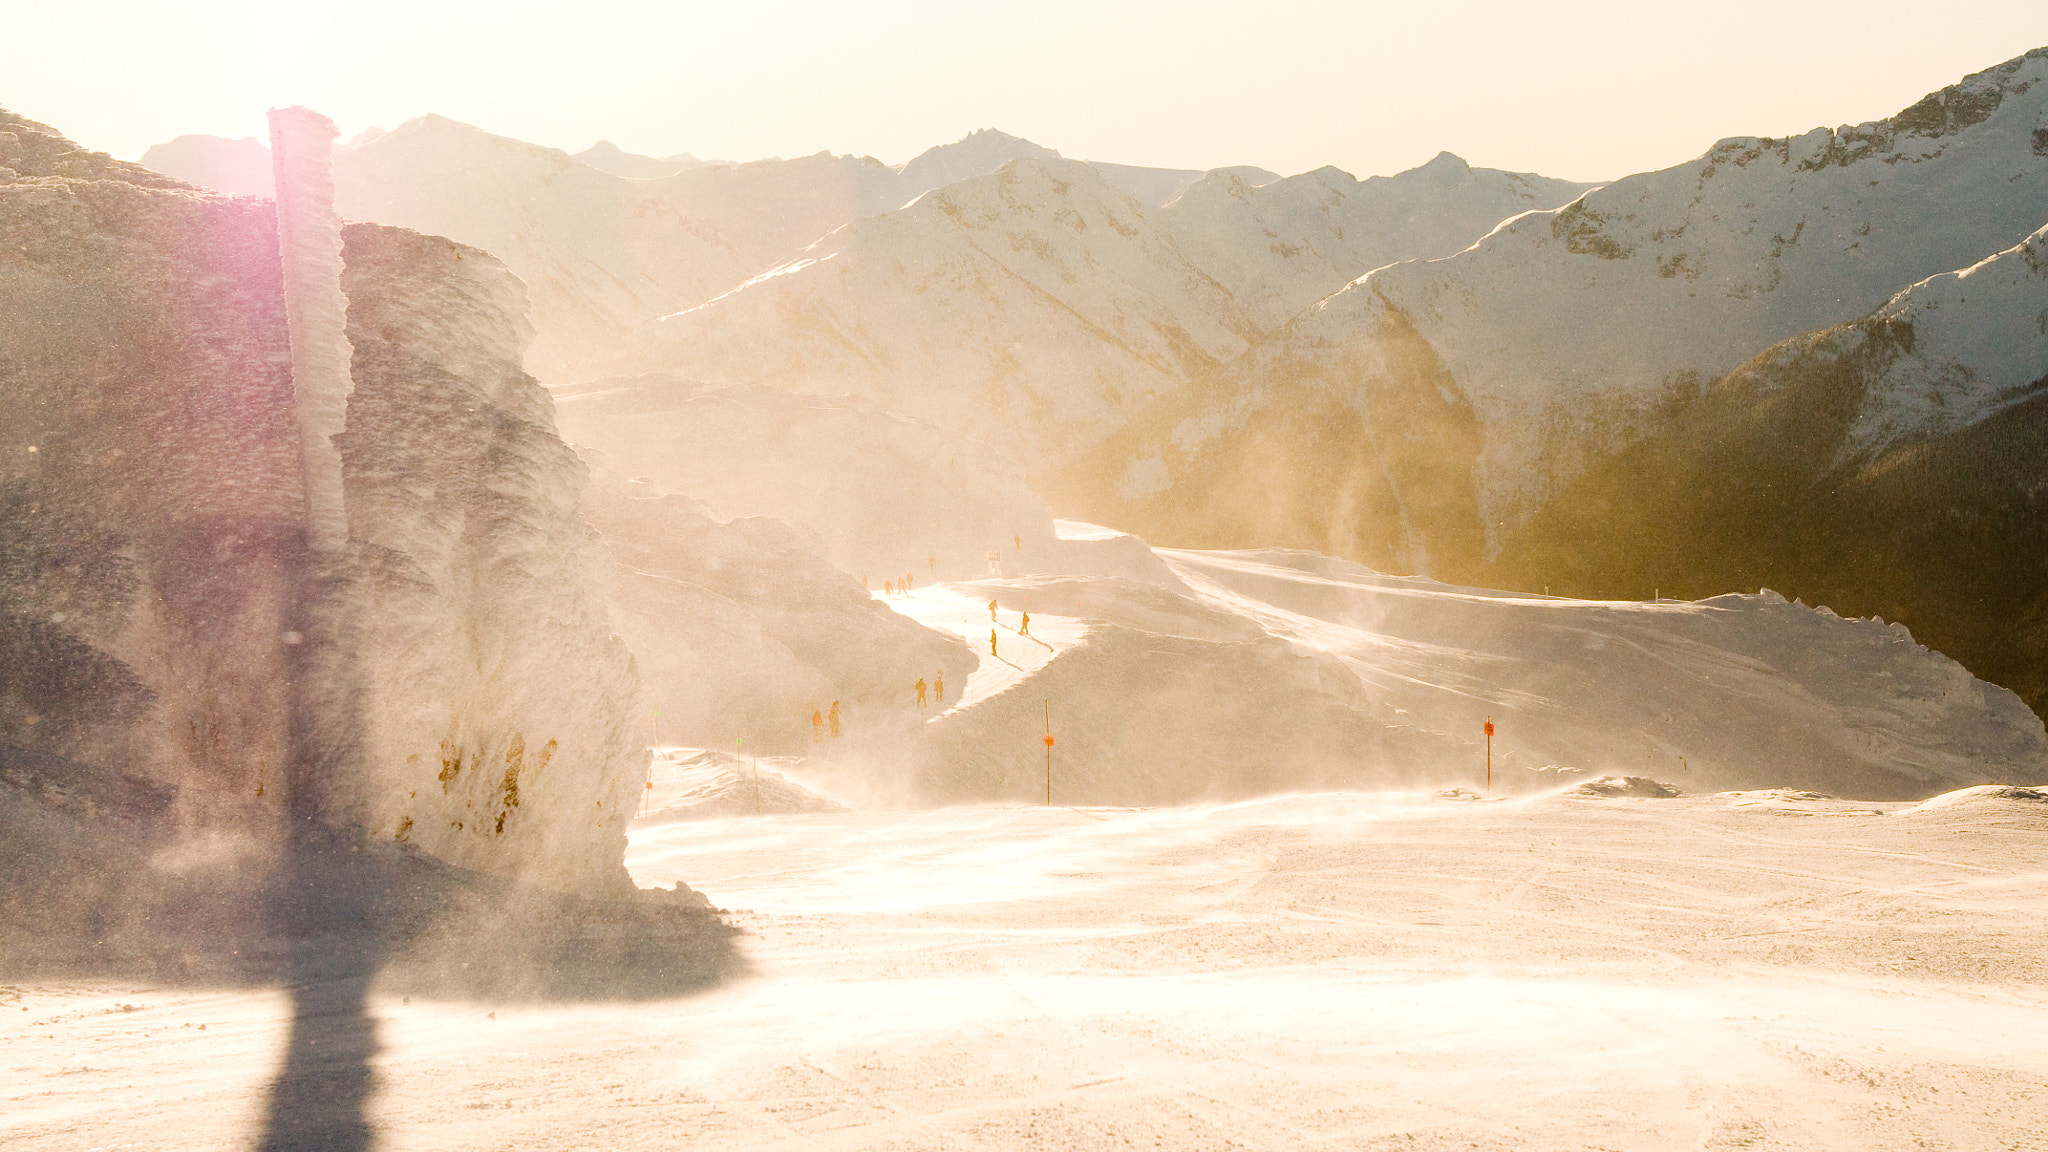 Photograph Windy morning on Whistler peak by Ludovic Duvert on 500px